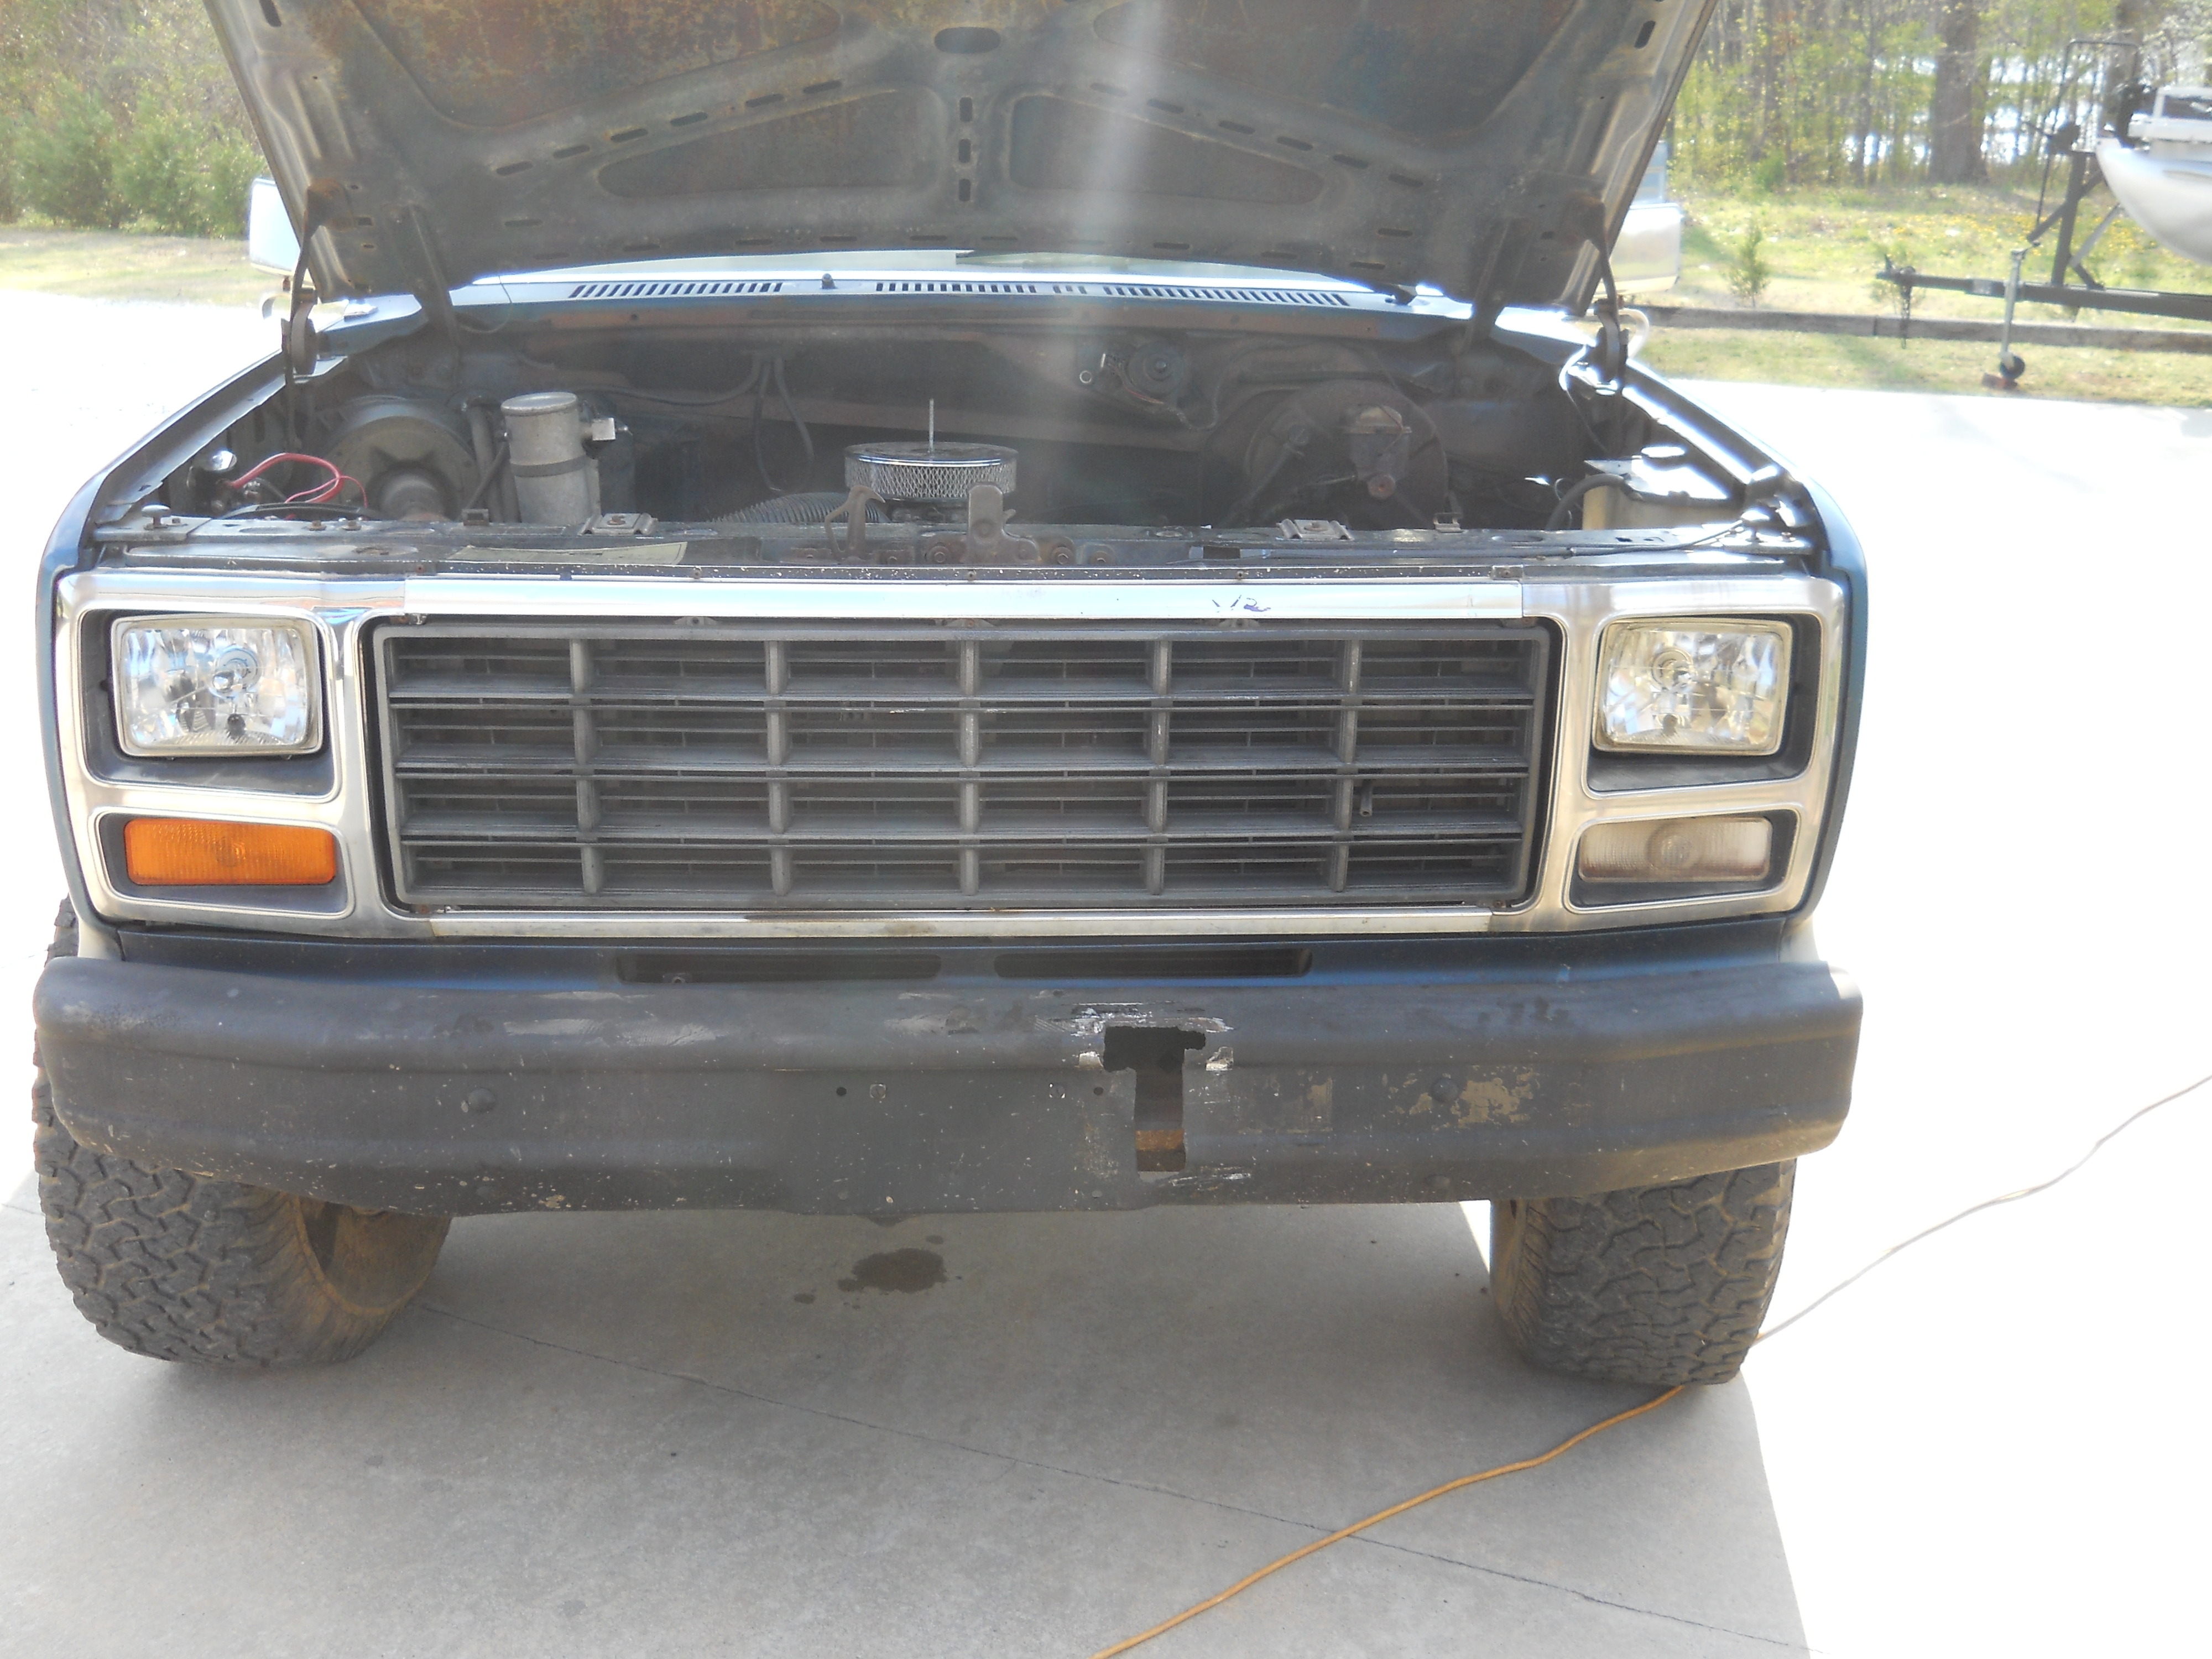 94yota4cly5spd 1980 Ford Bronco Specs Photos Modification Info At Jumping 39233114002 Original 39233114004